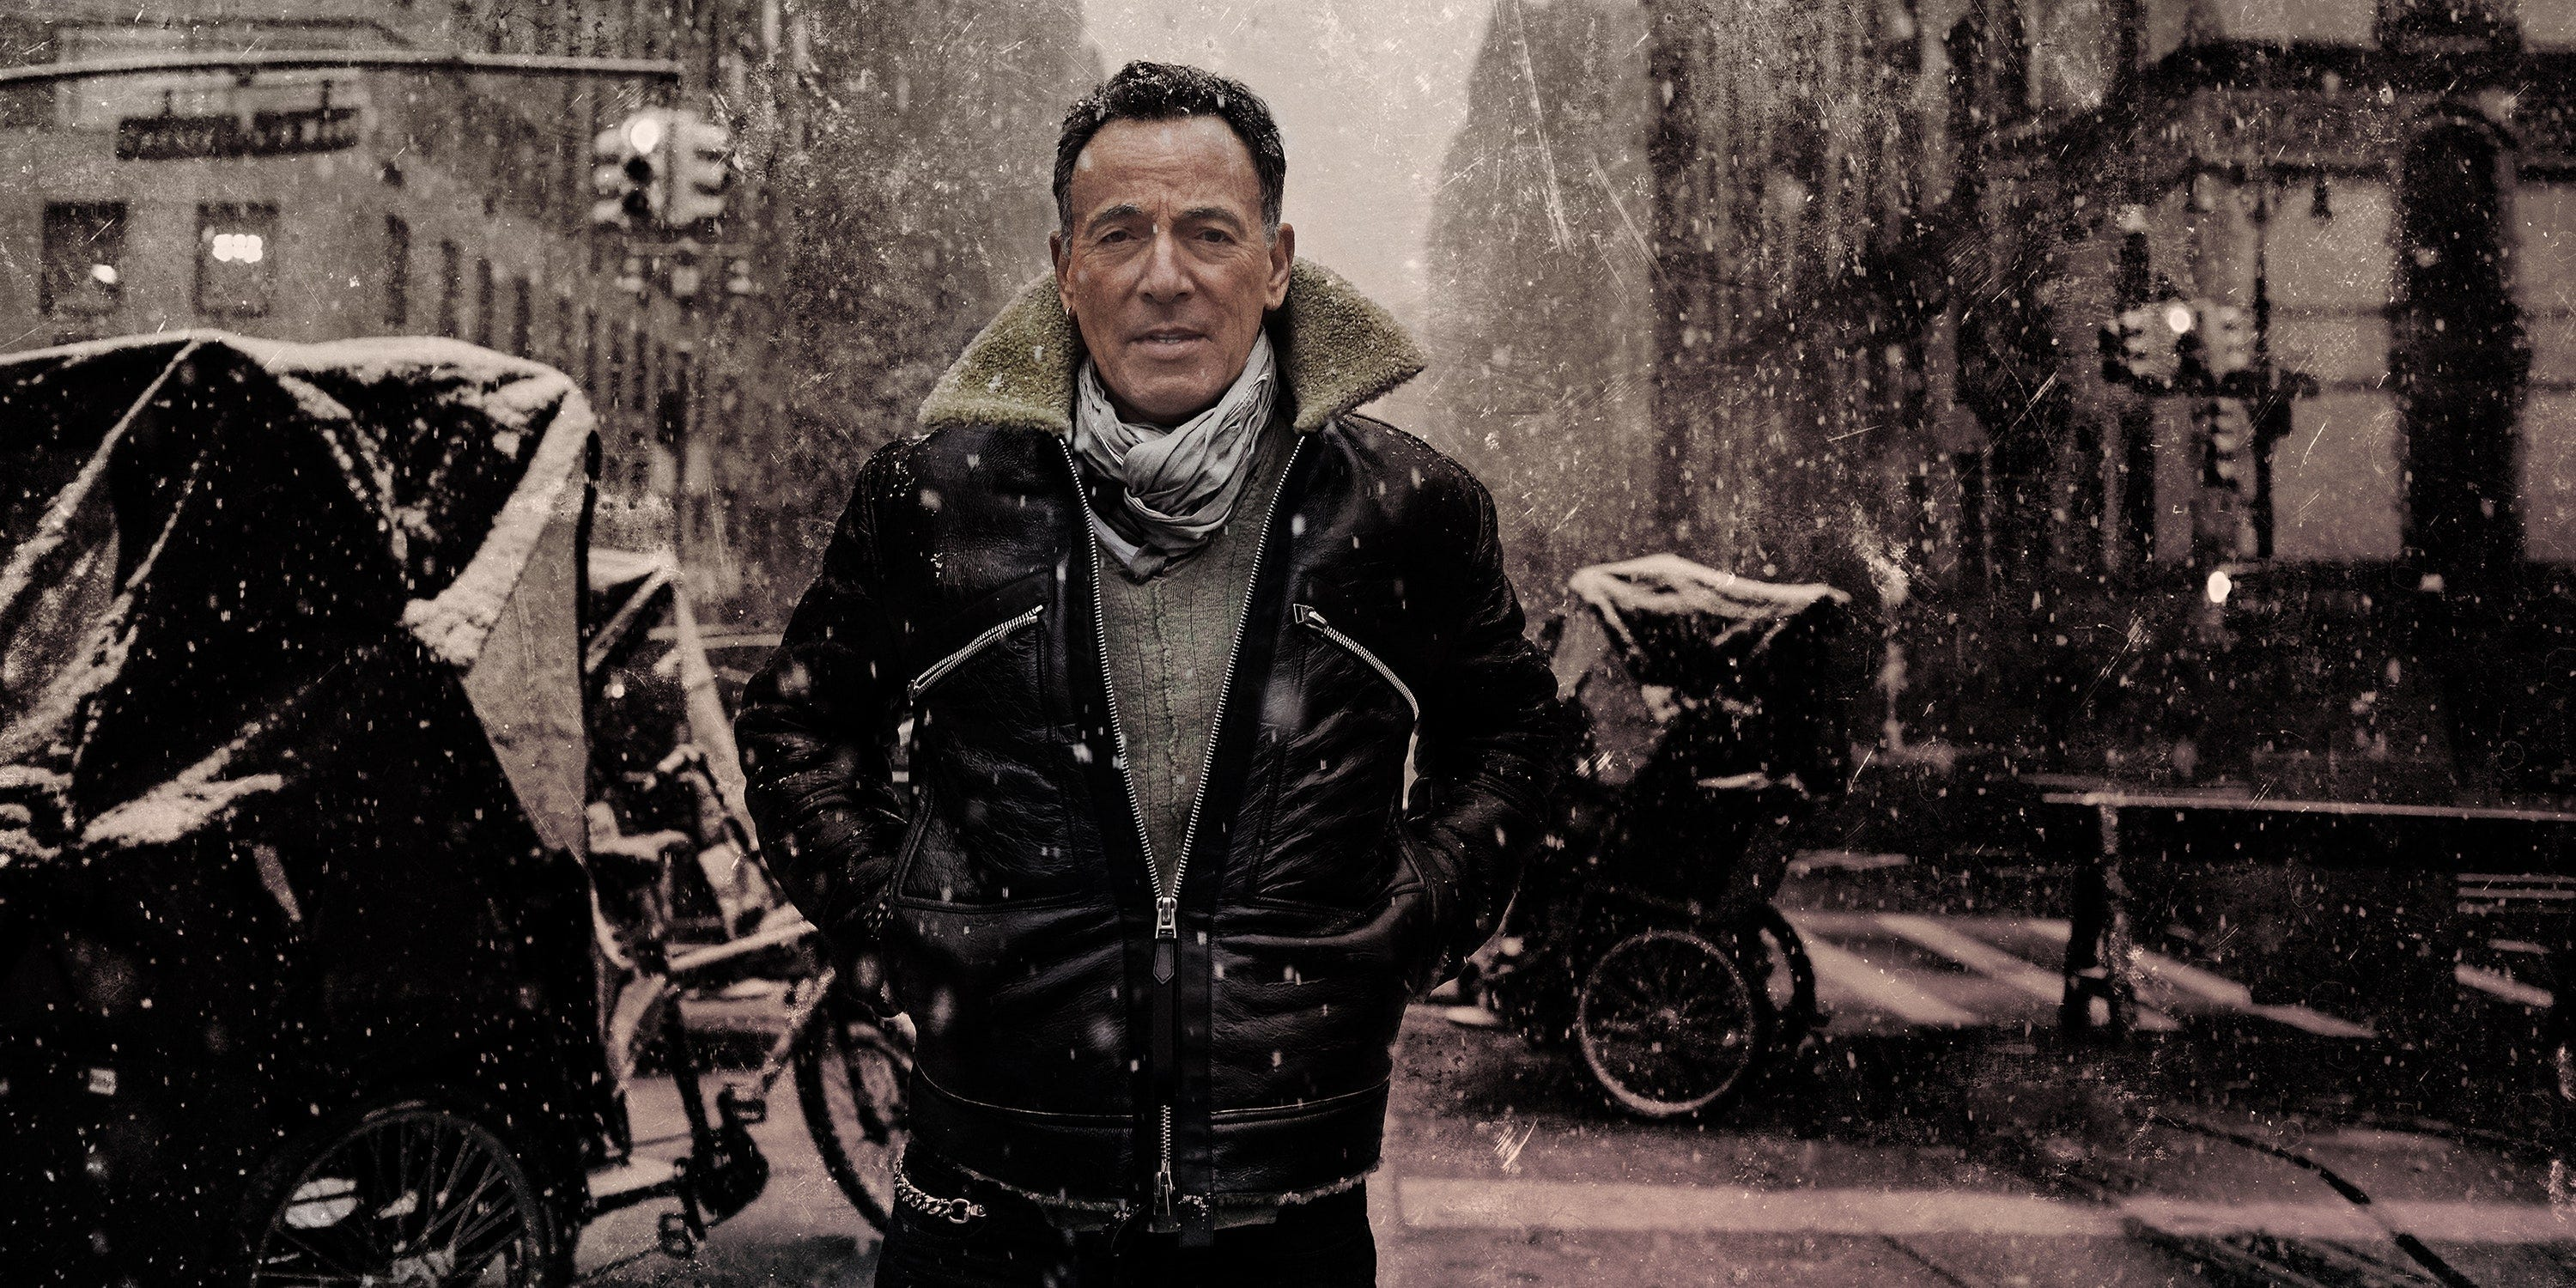 bruce springsteen letter to you 37ff8573 0937 4157 976e 8c947a8fd1c9.